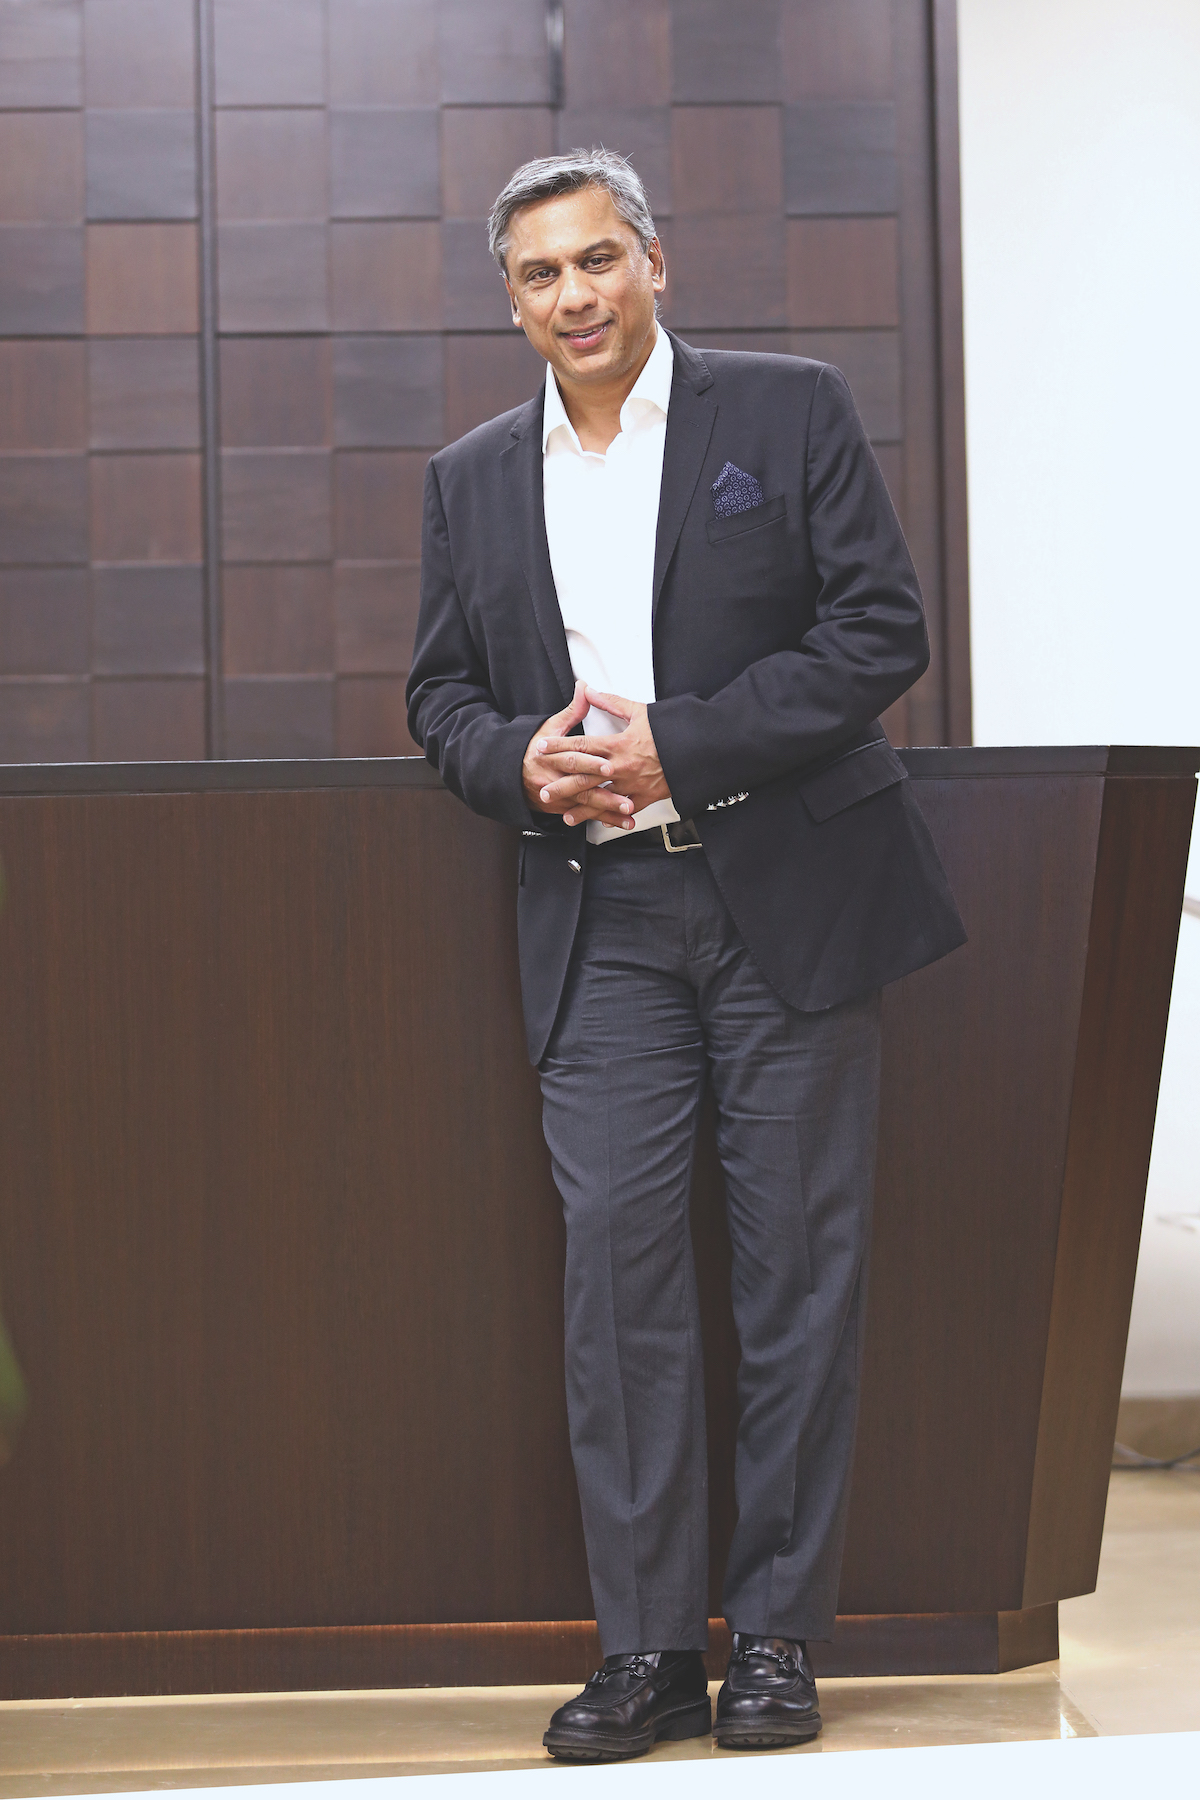 Anurang Jain, Managing Director of Endurance Technologies